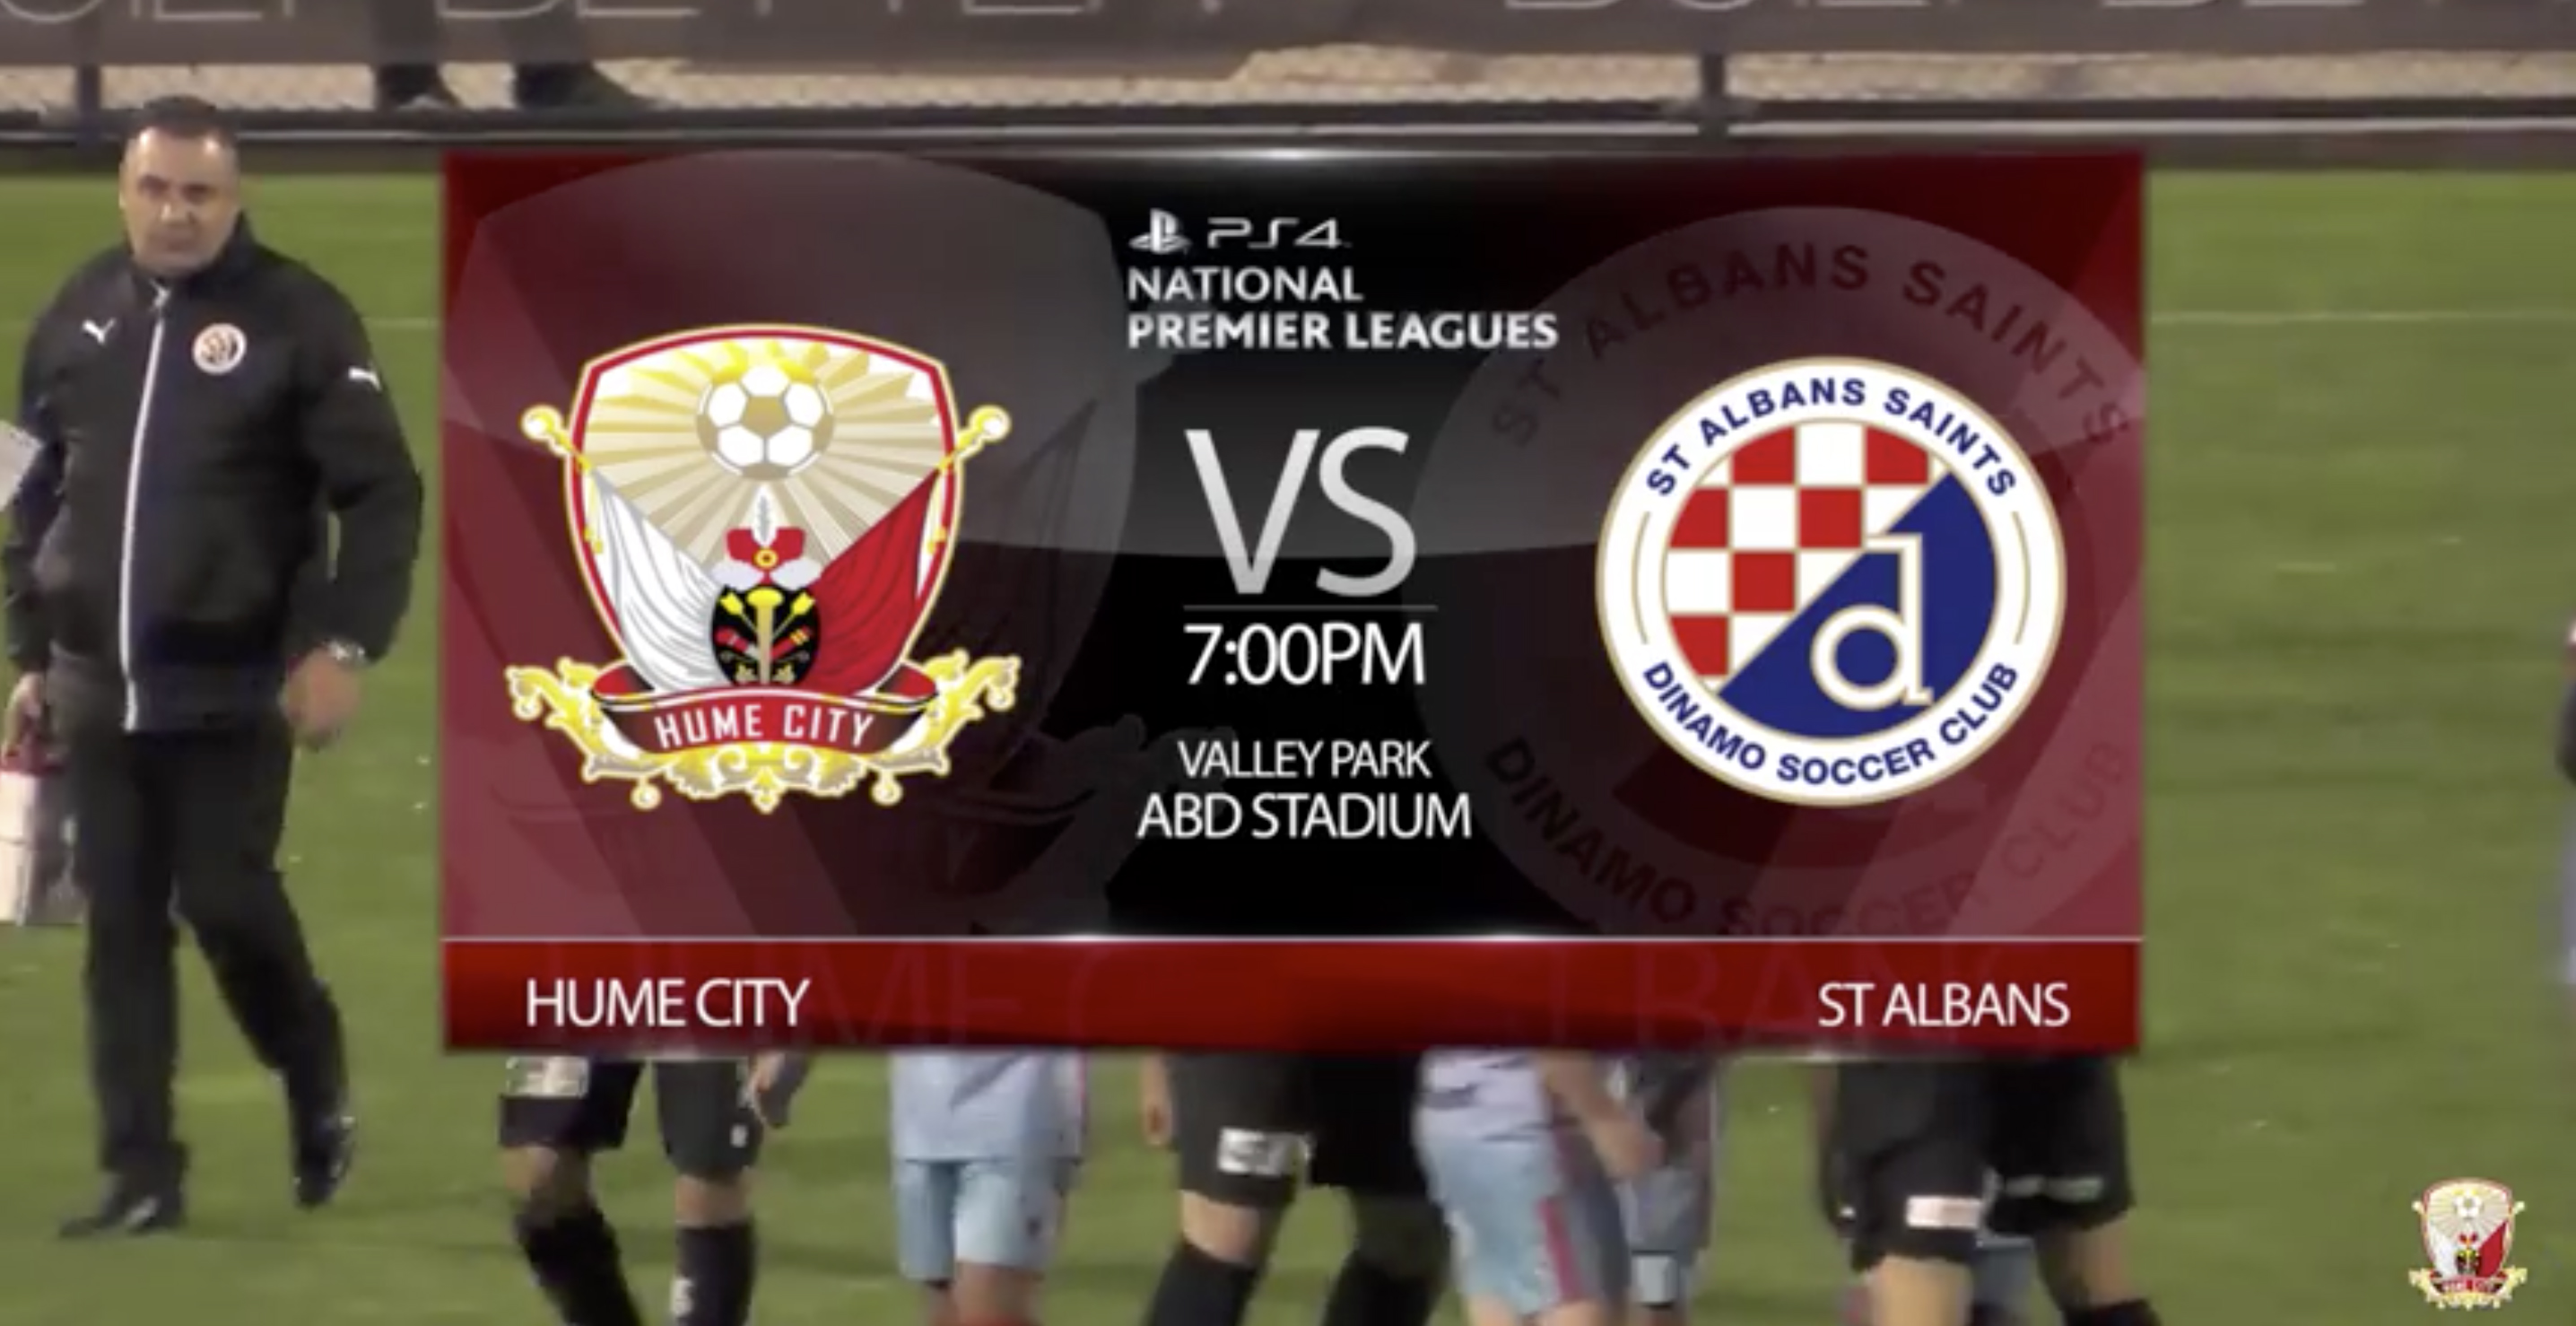 MATCH HIGHLIGHTS: Hume City 2 – 1 St Albans